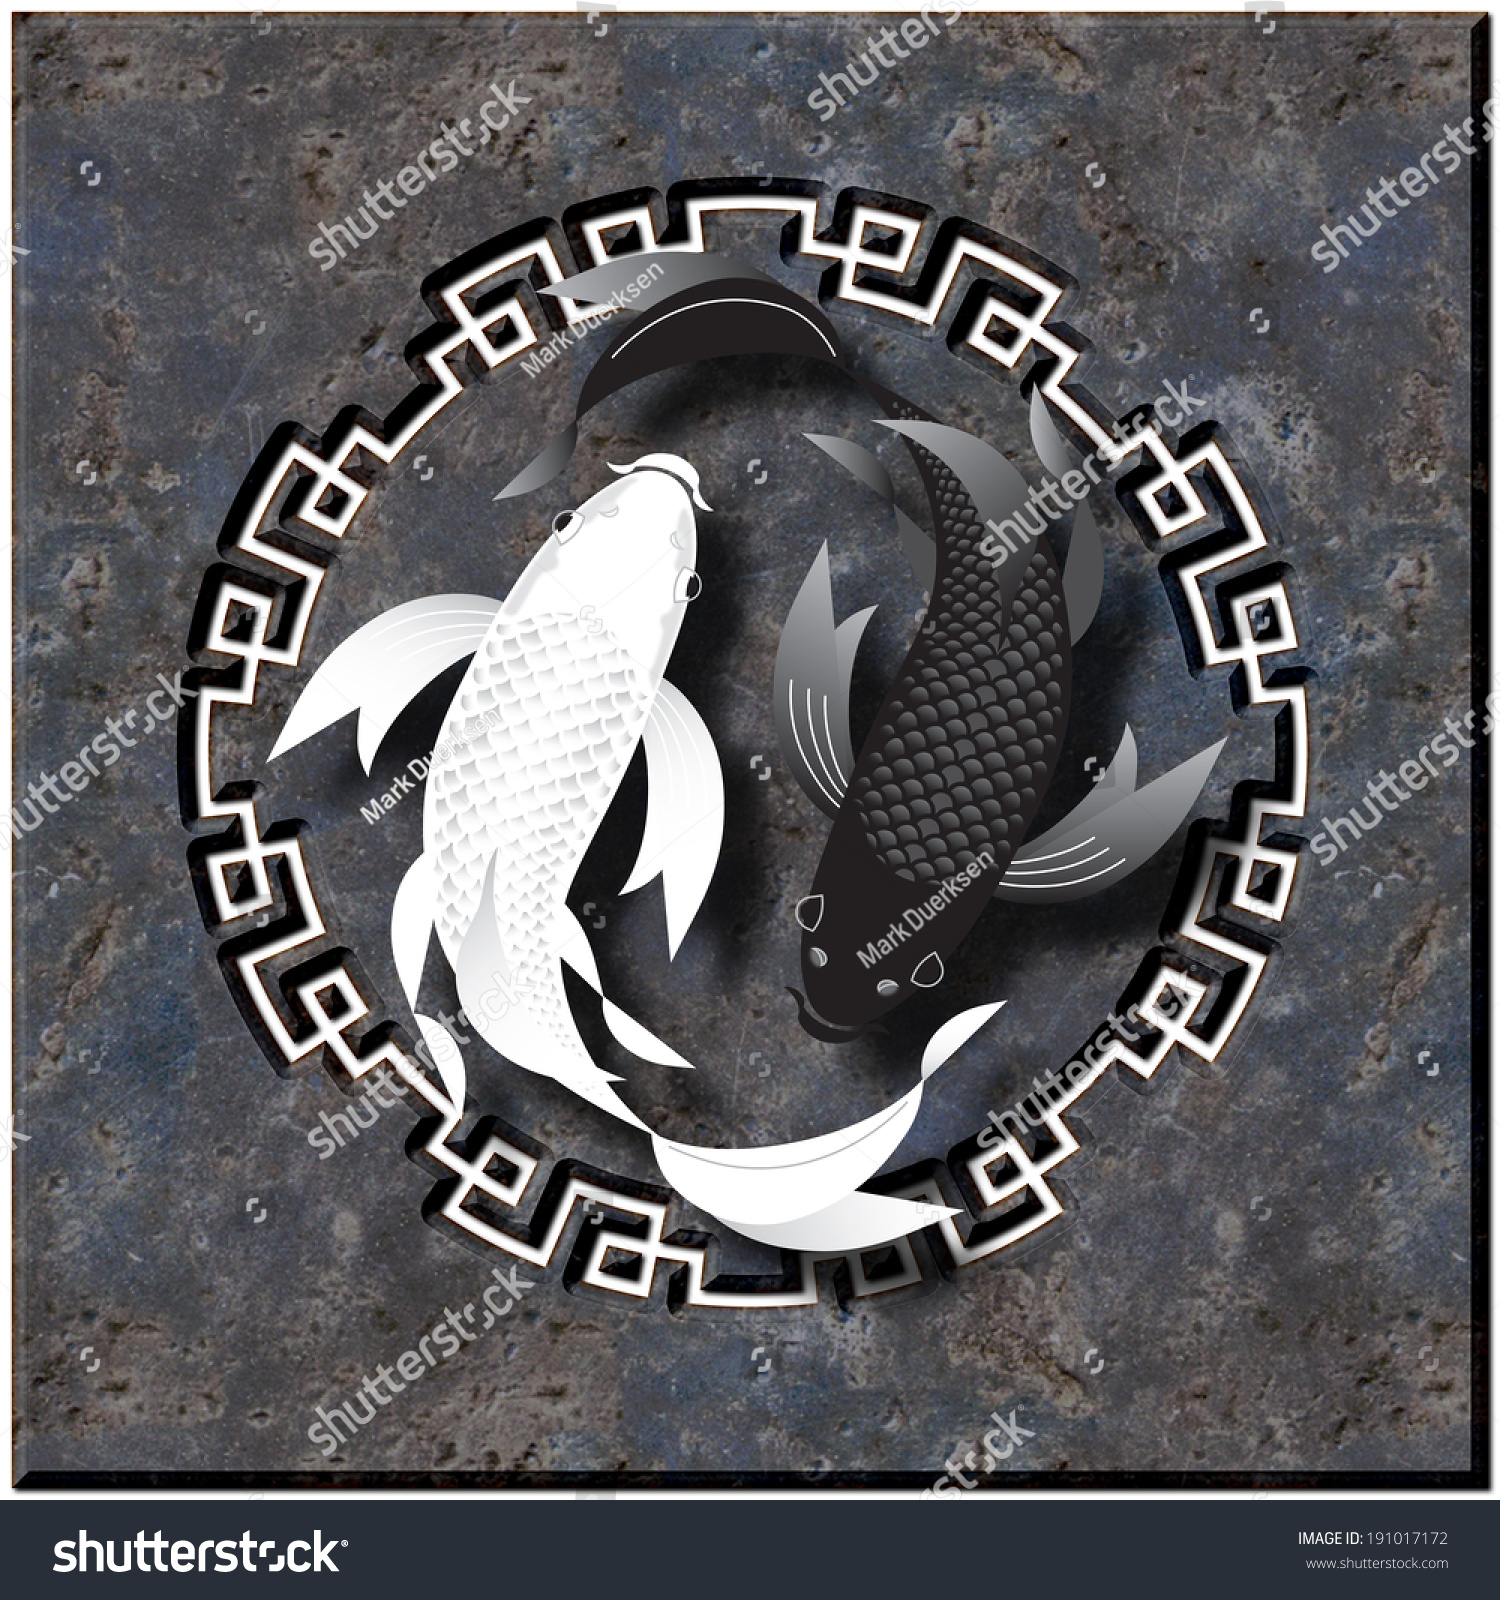 Stylized butterfly koi fish swimming over black granite background with cutout design